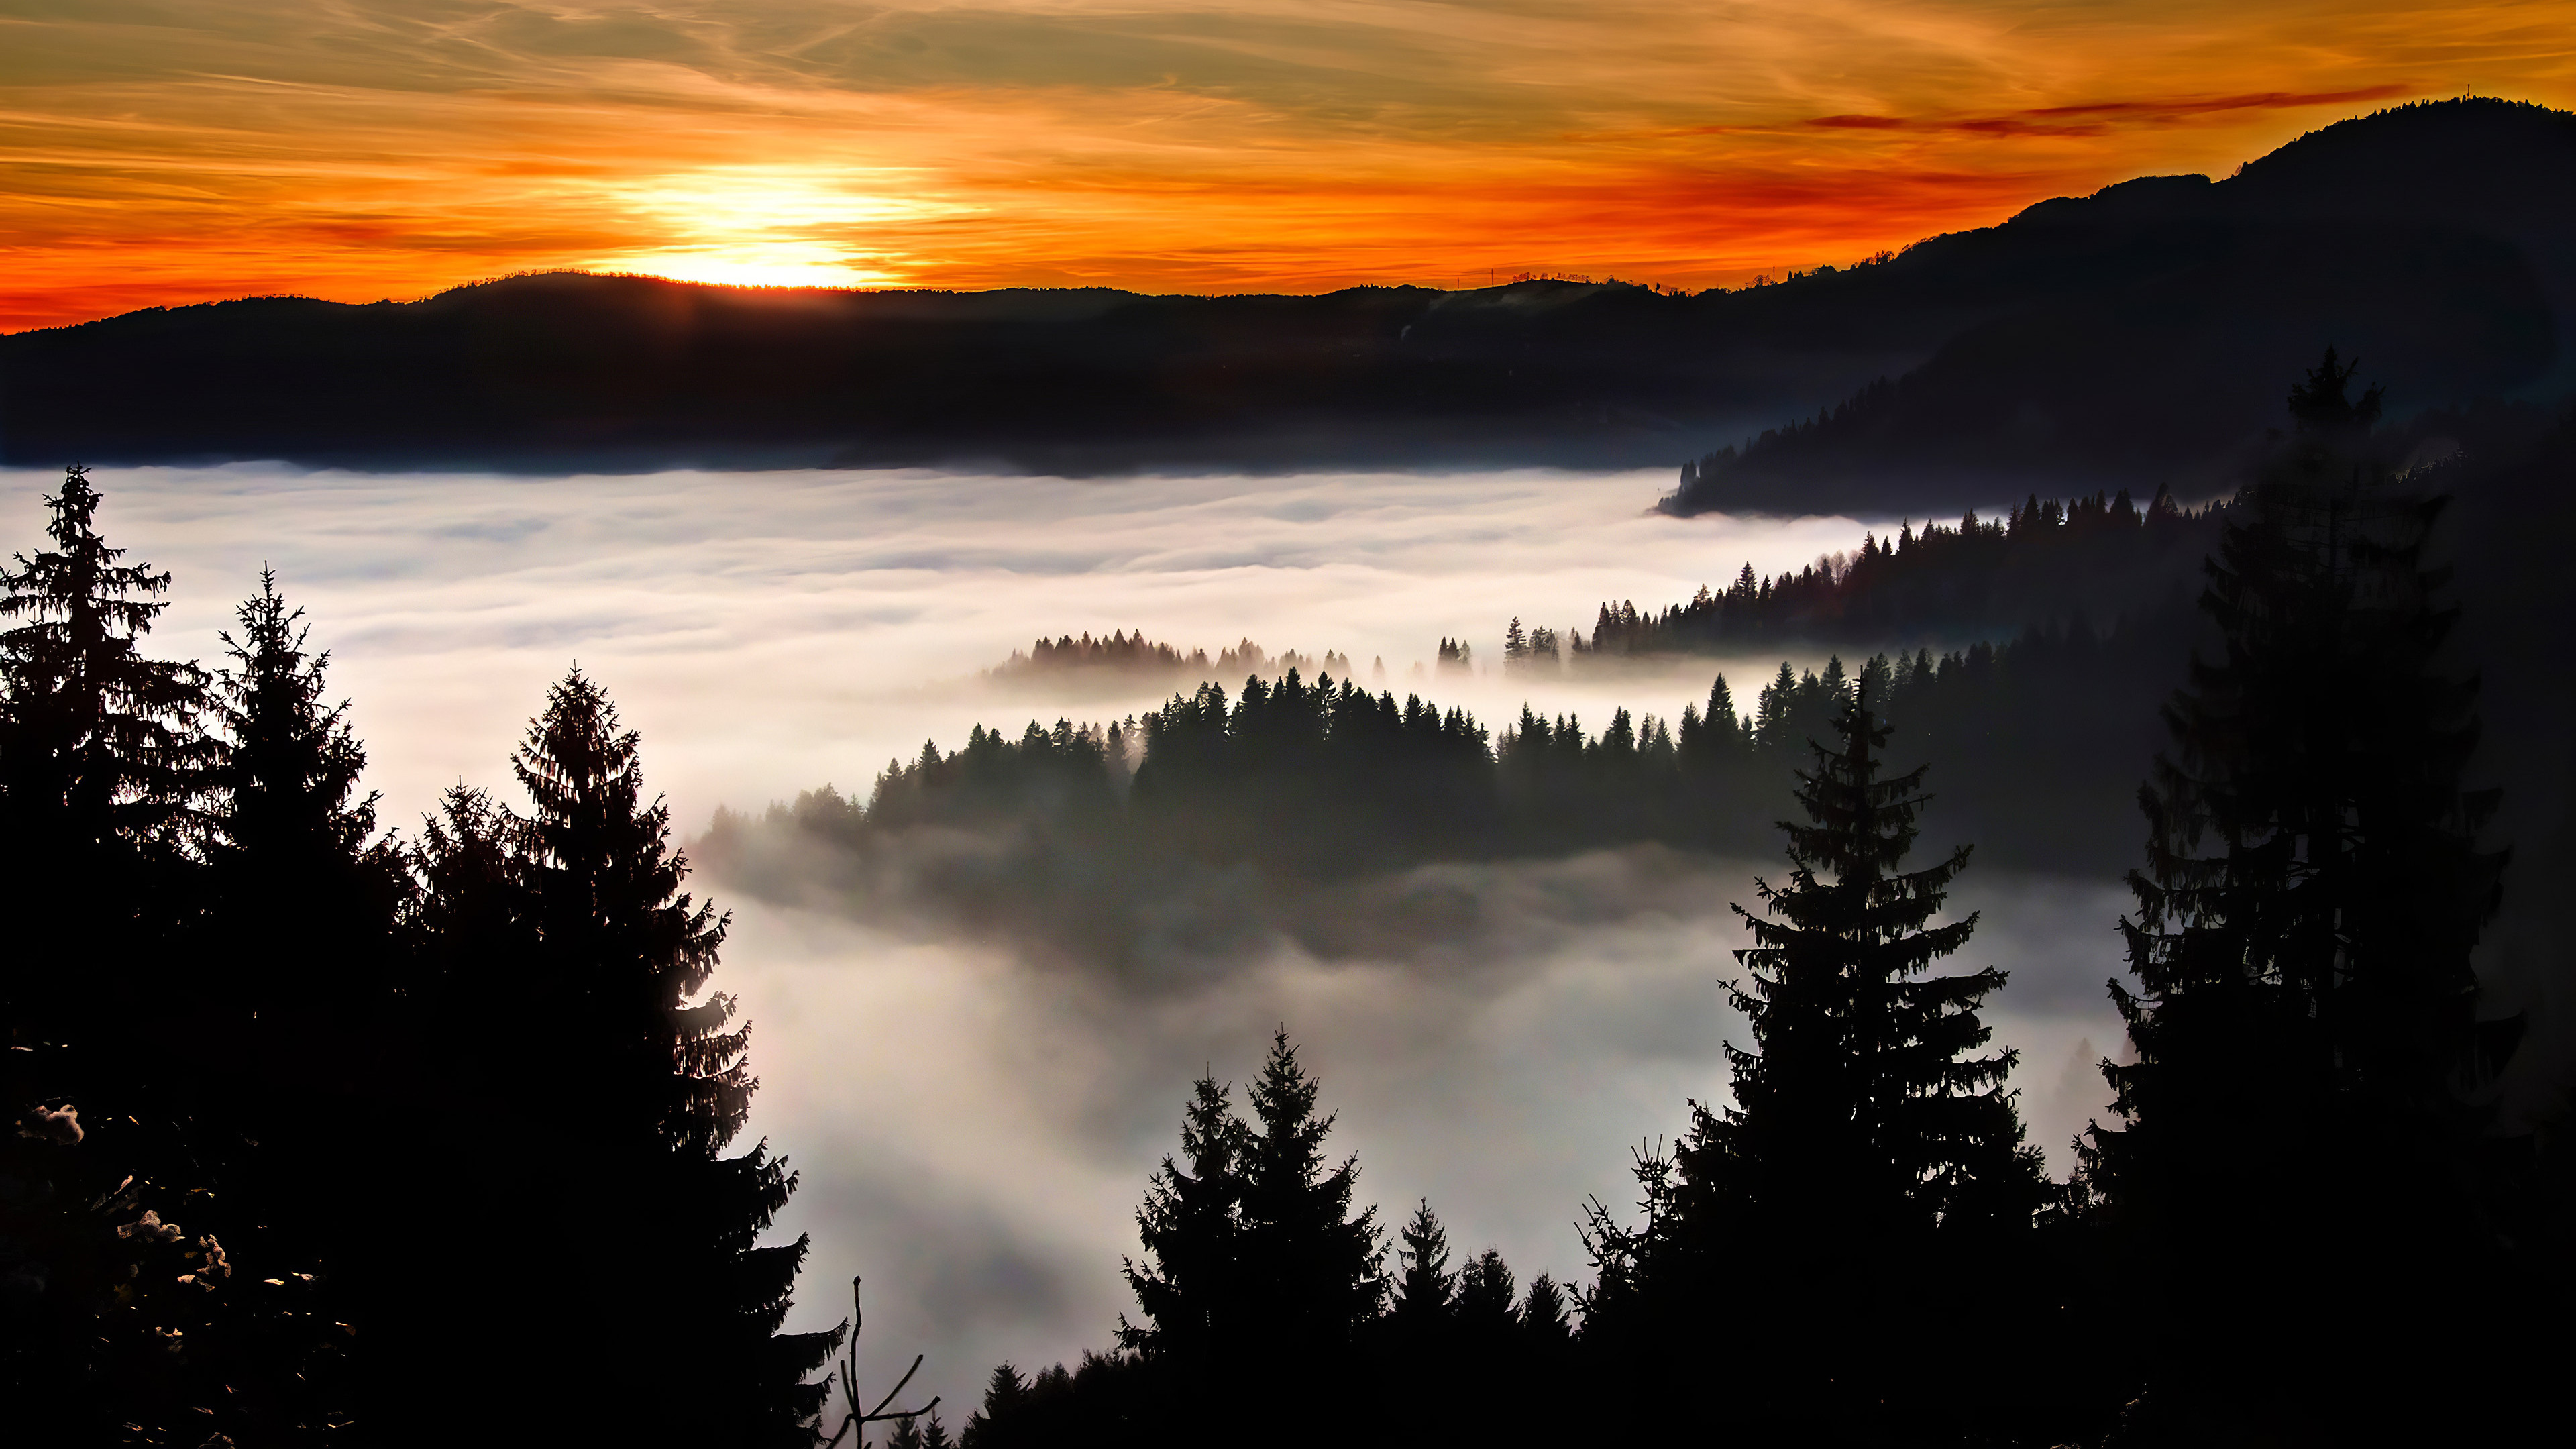 trees-covered-in-clouds-4k-v4.jpg